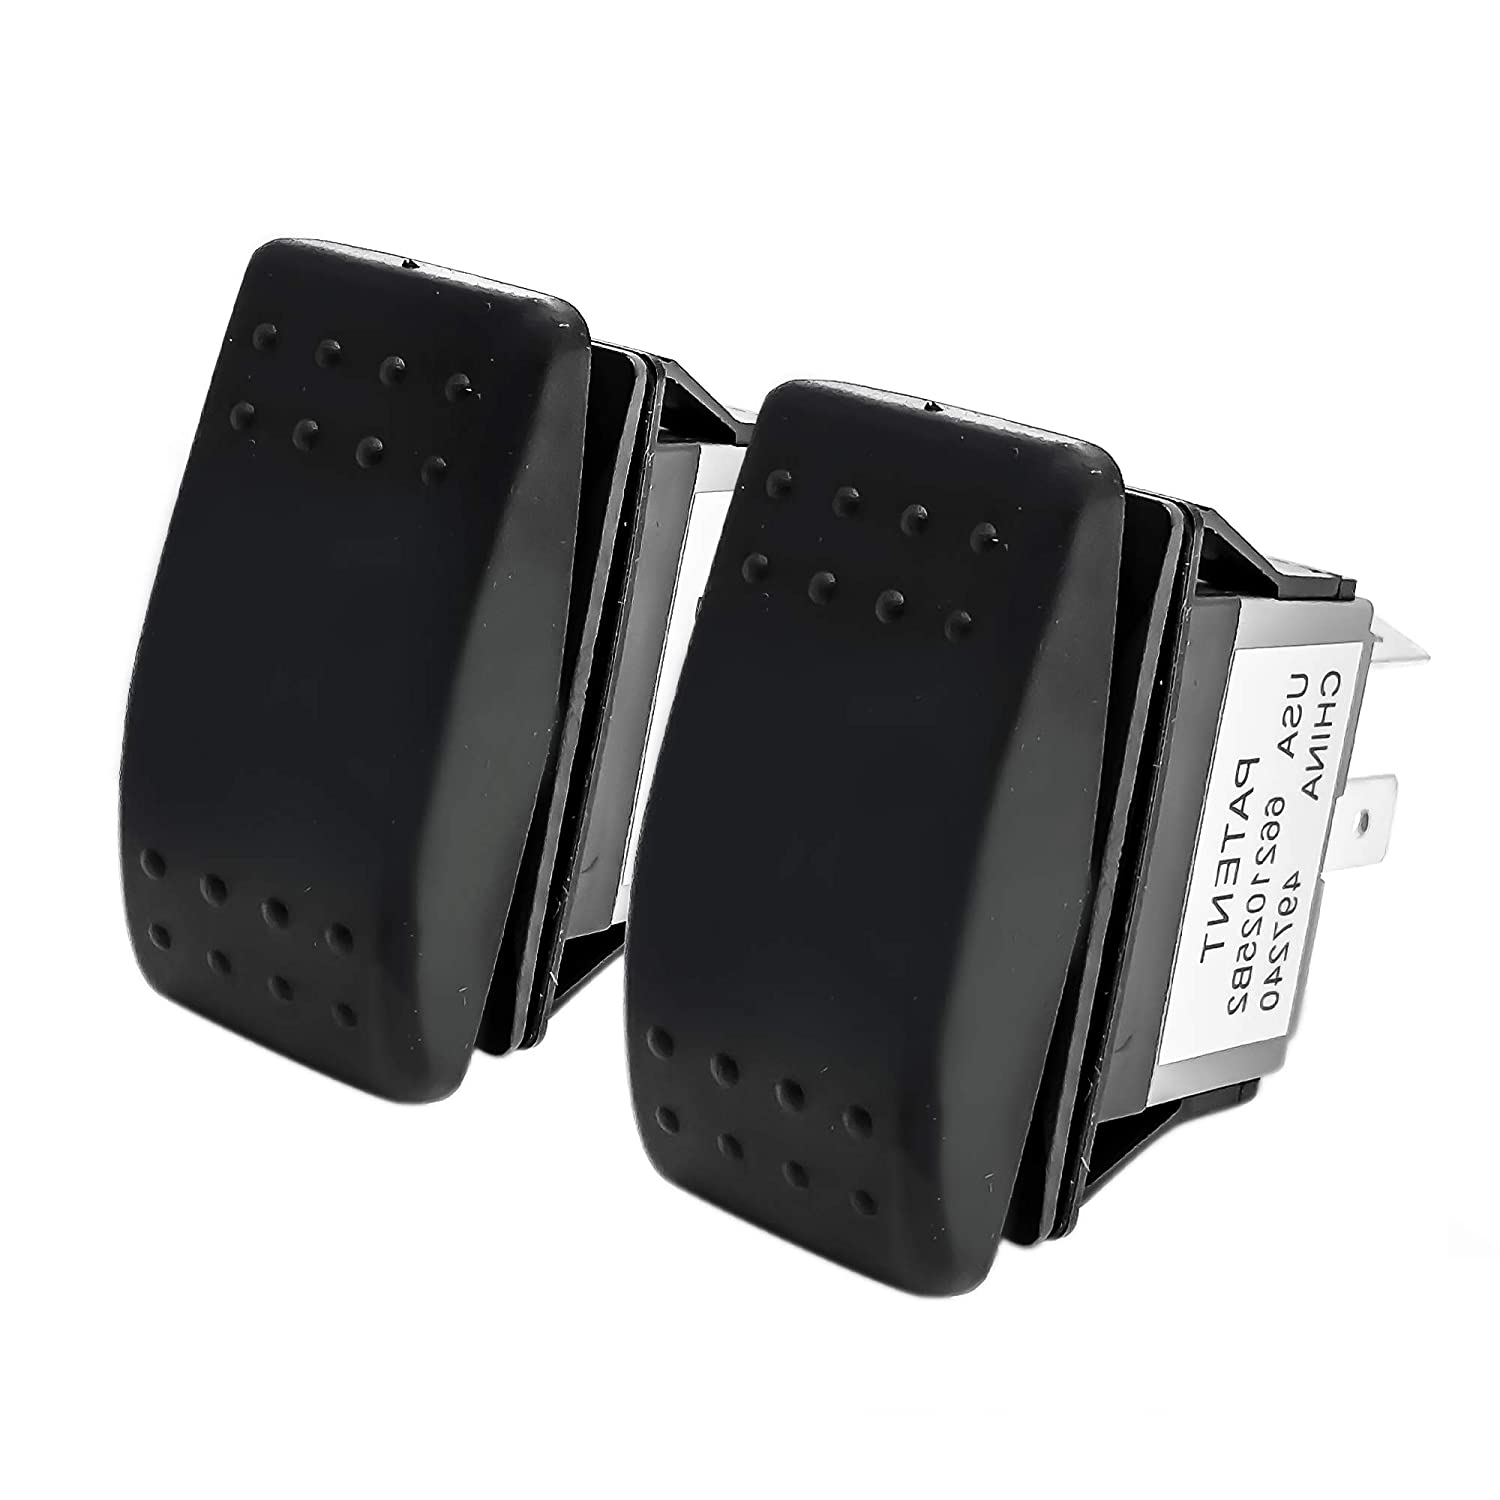 Five Oceans On-Off-On Rocker Switch Pins Translated 6 FO-4154-M2 At the price Pair